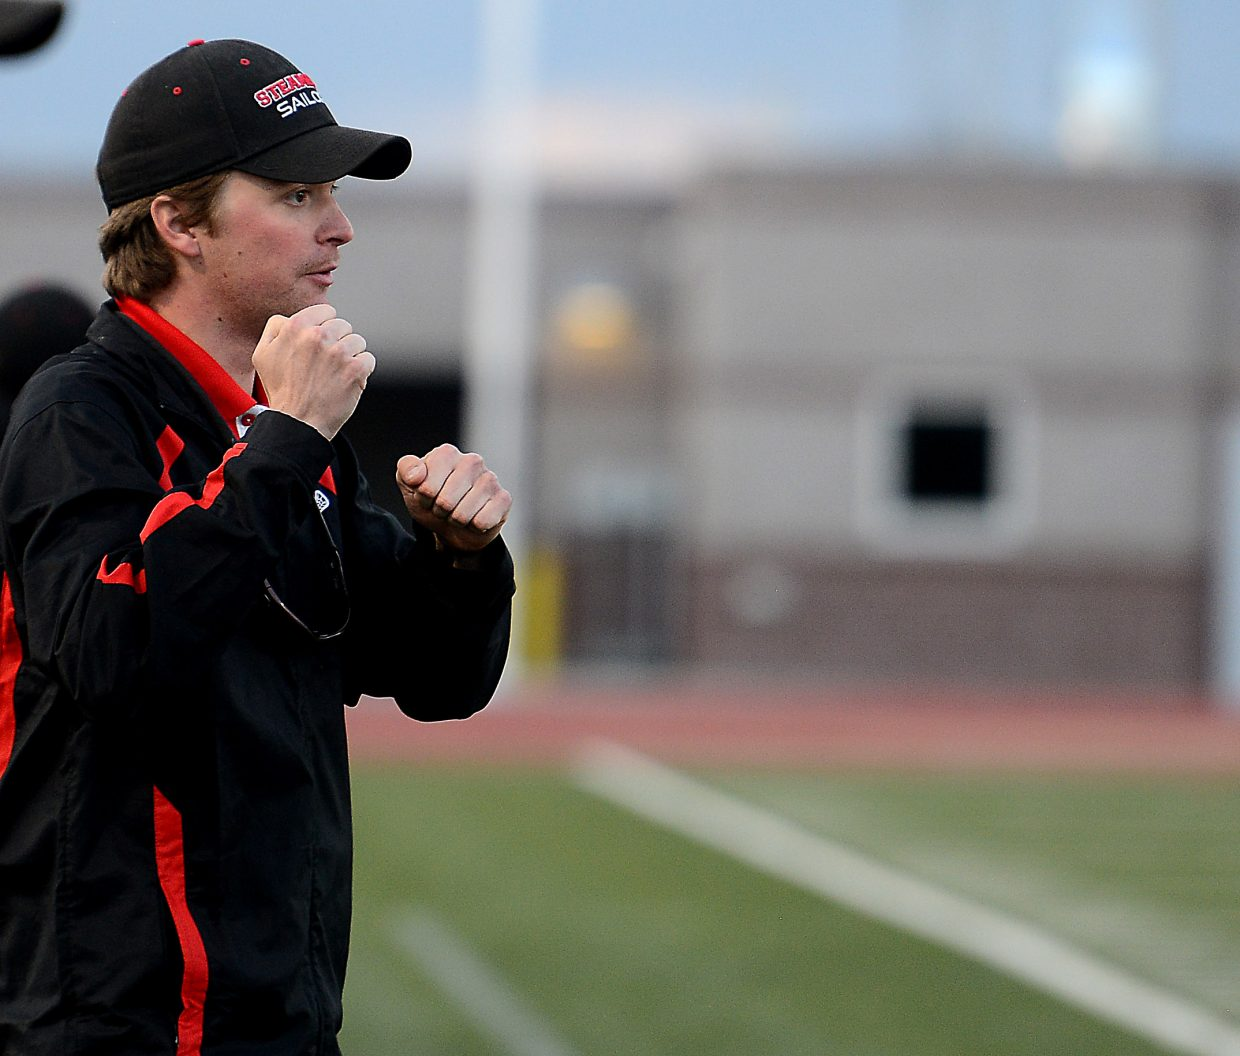 Steamboat coach Jay Lattimore cheers his team on Wednesday.